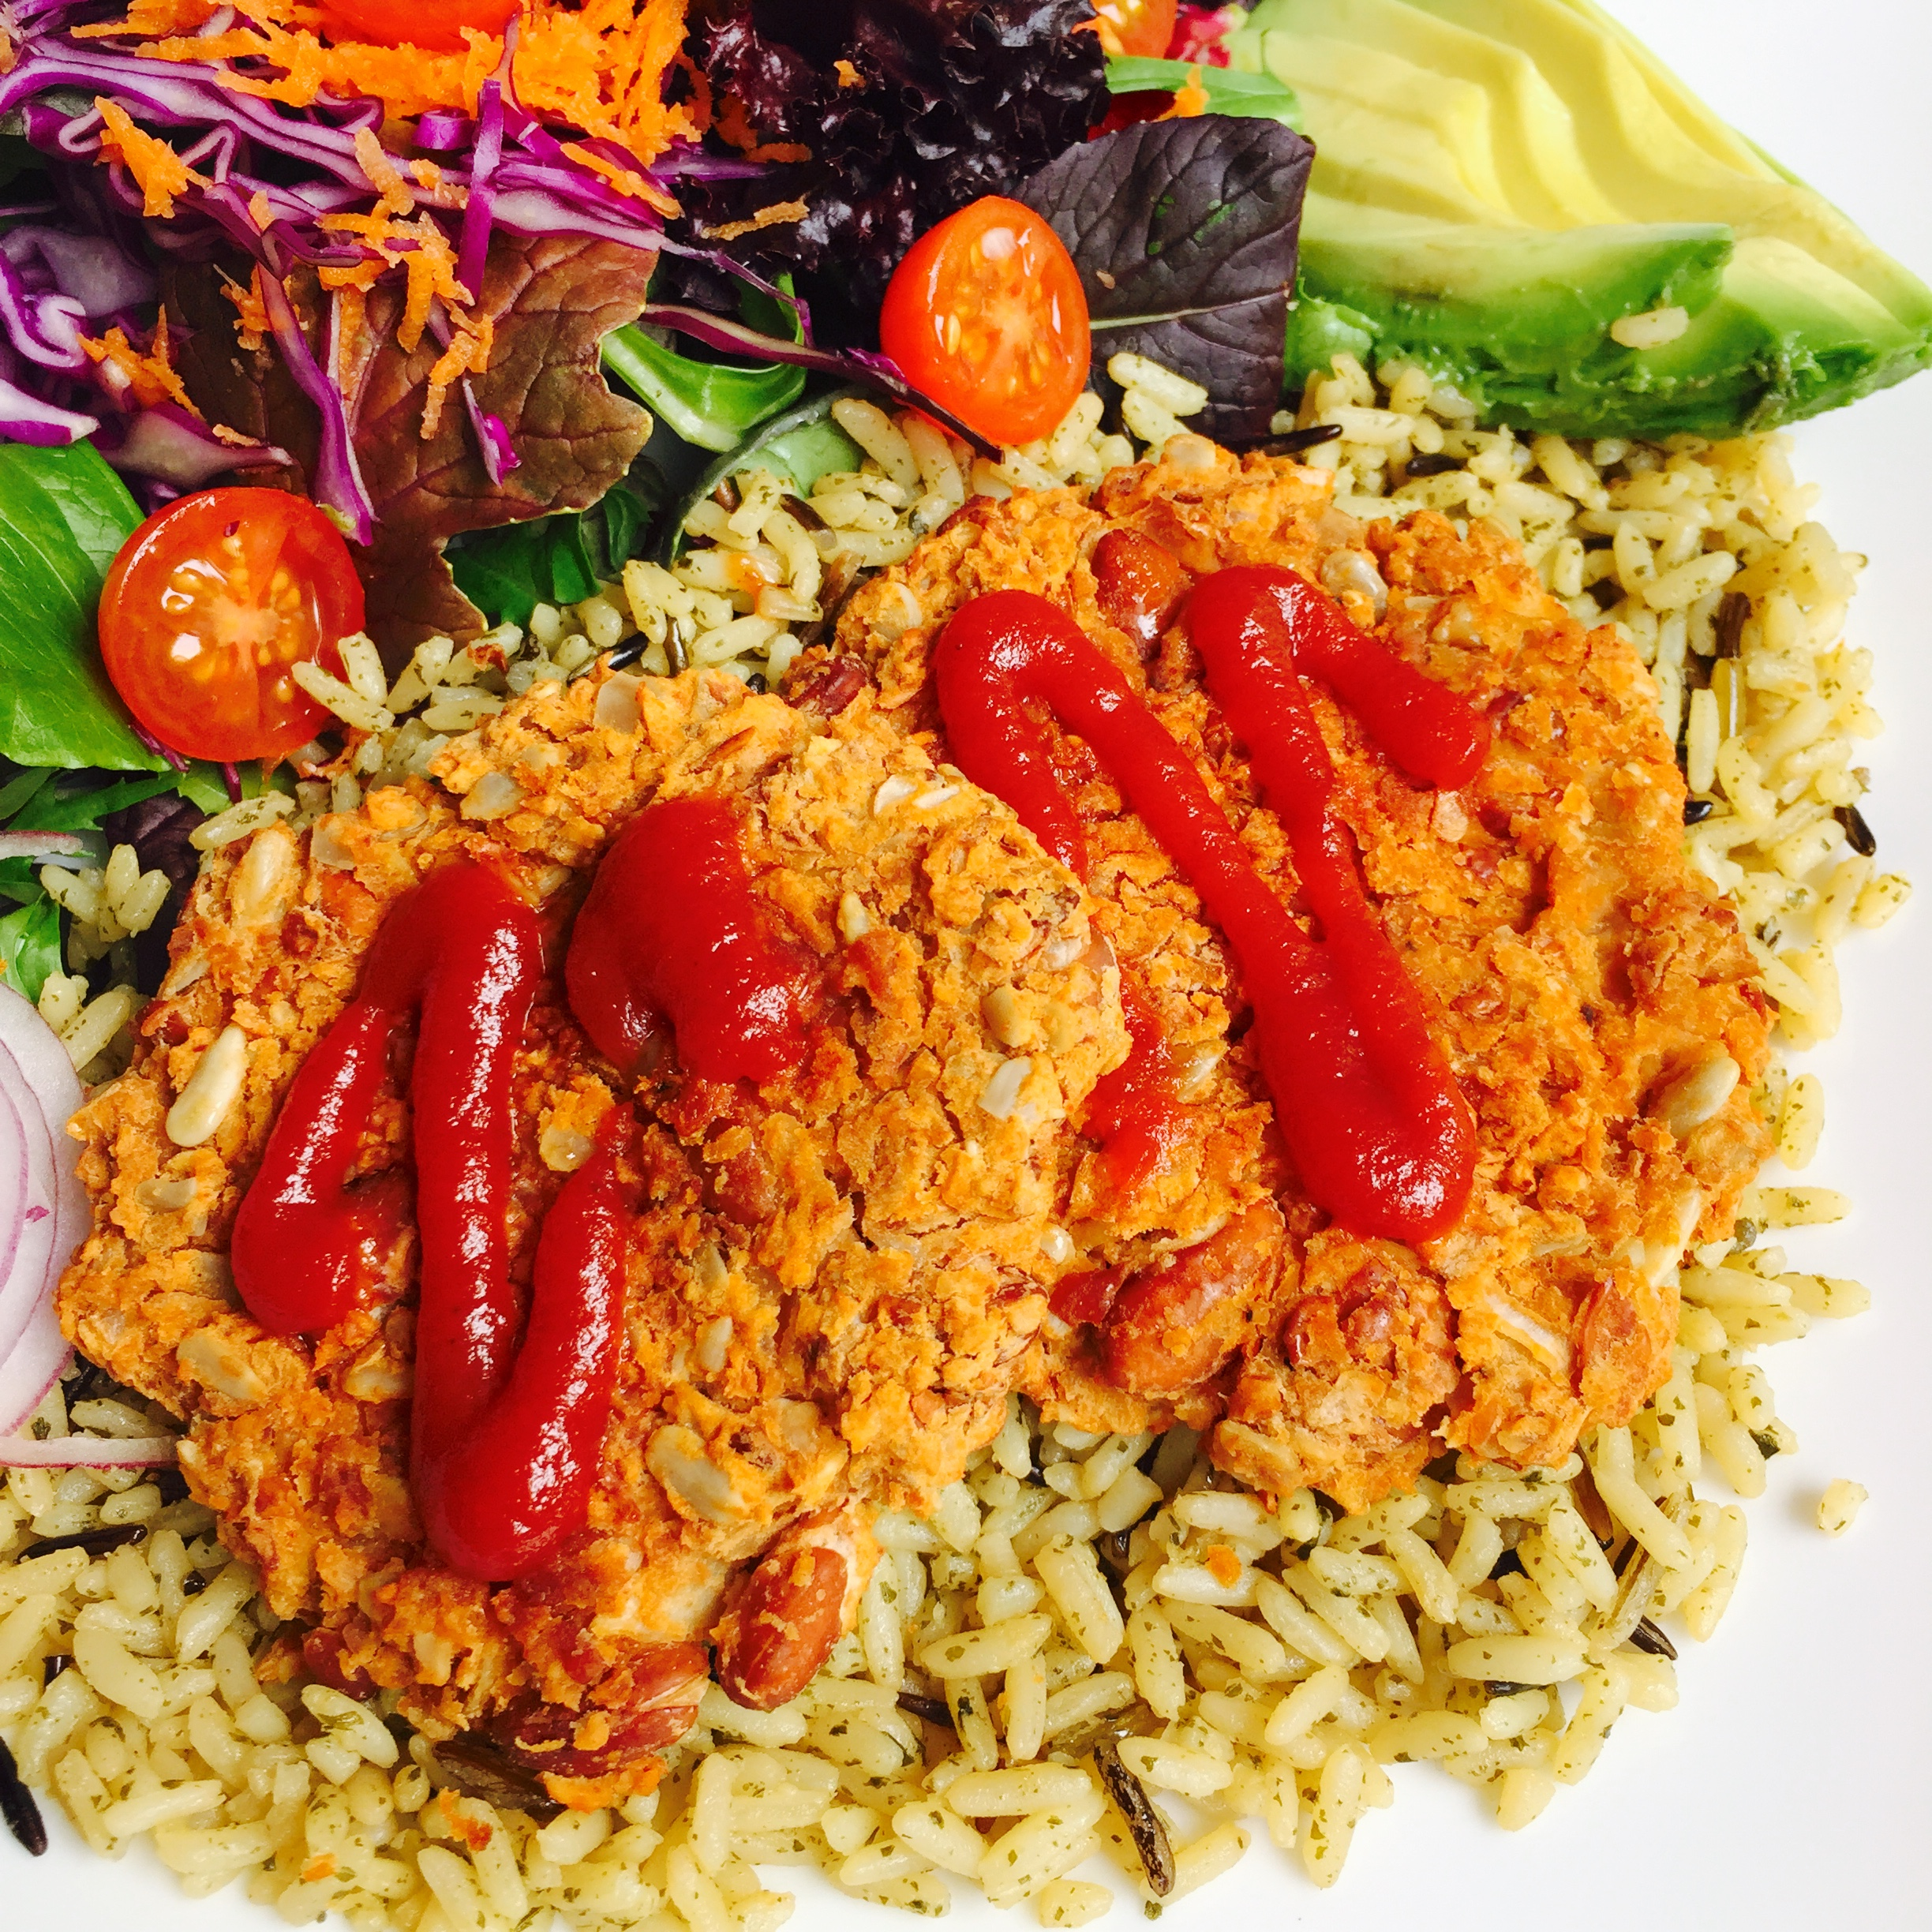 Dr Fuhrman Eat to Live Program Recipe Simple Bean Burgers from Eat to Live book by MyMommaToldMe.com